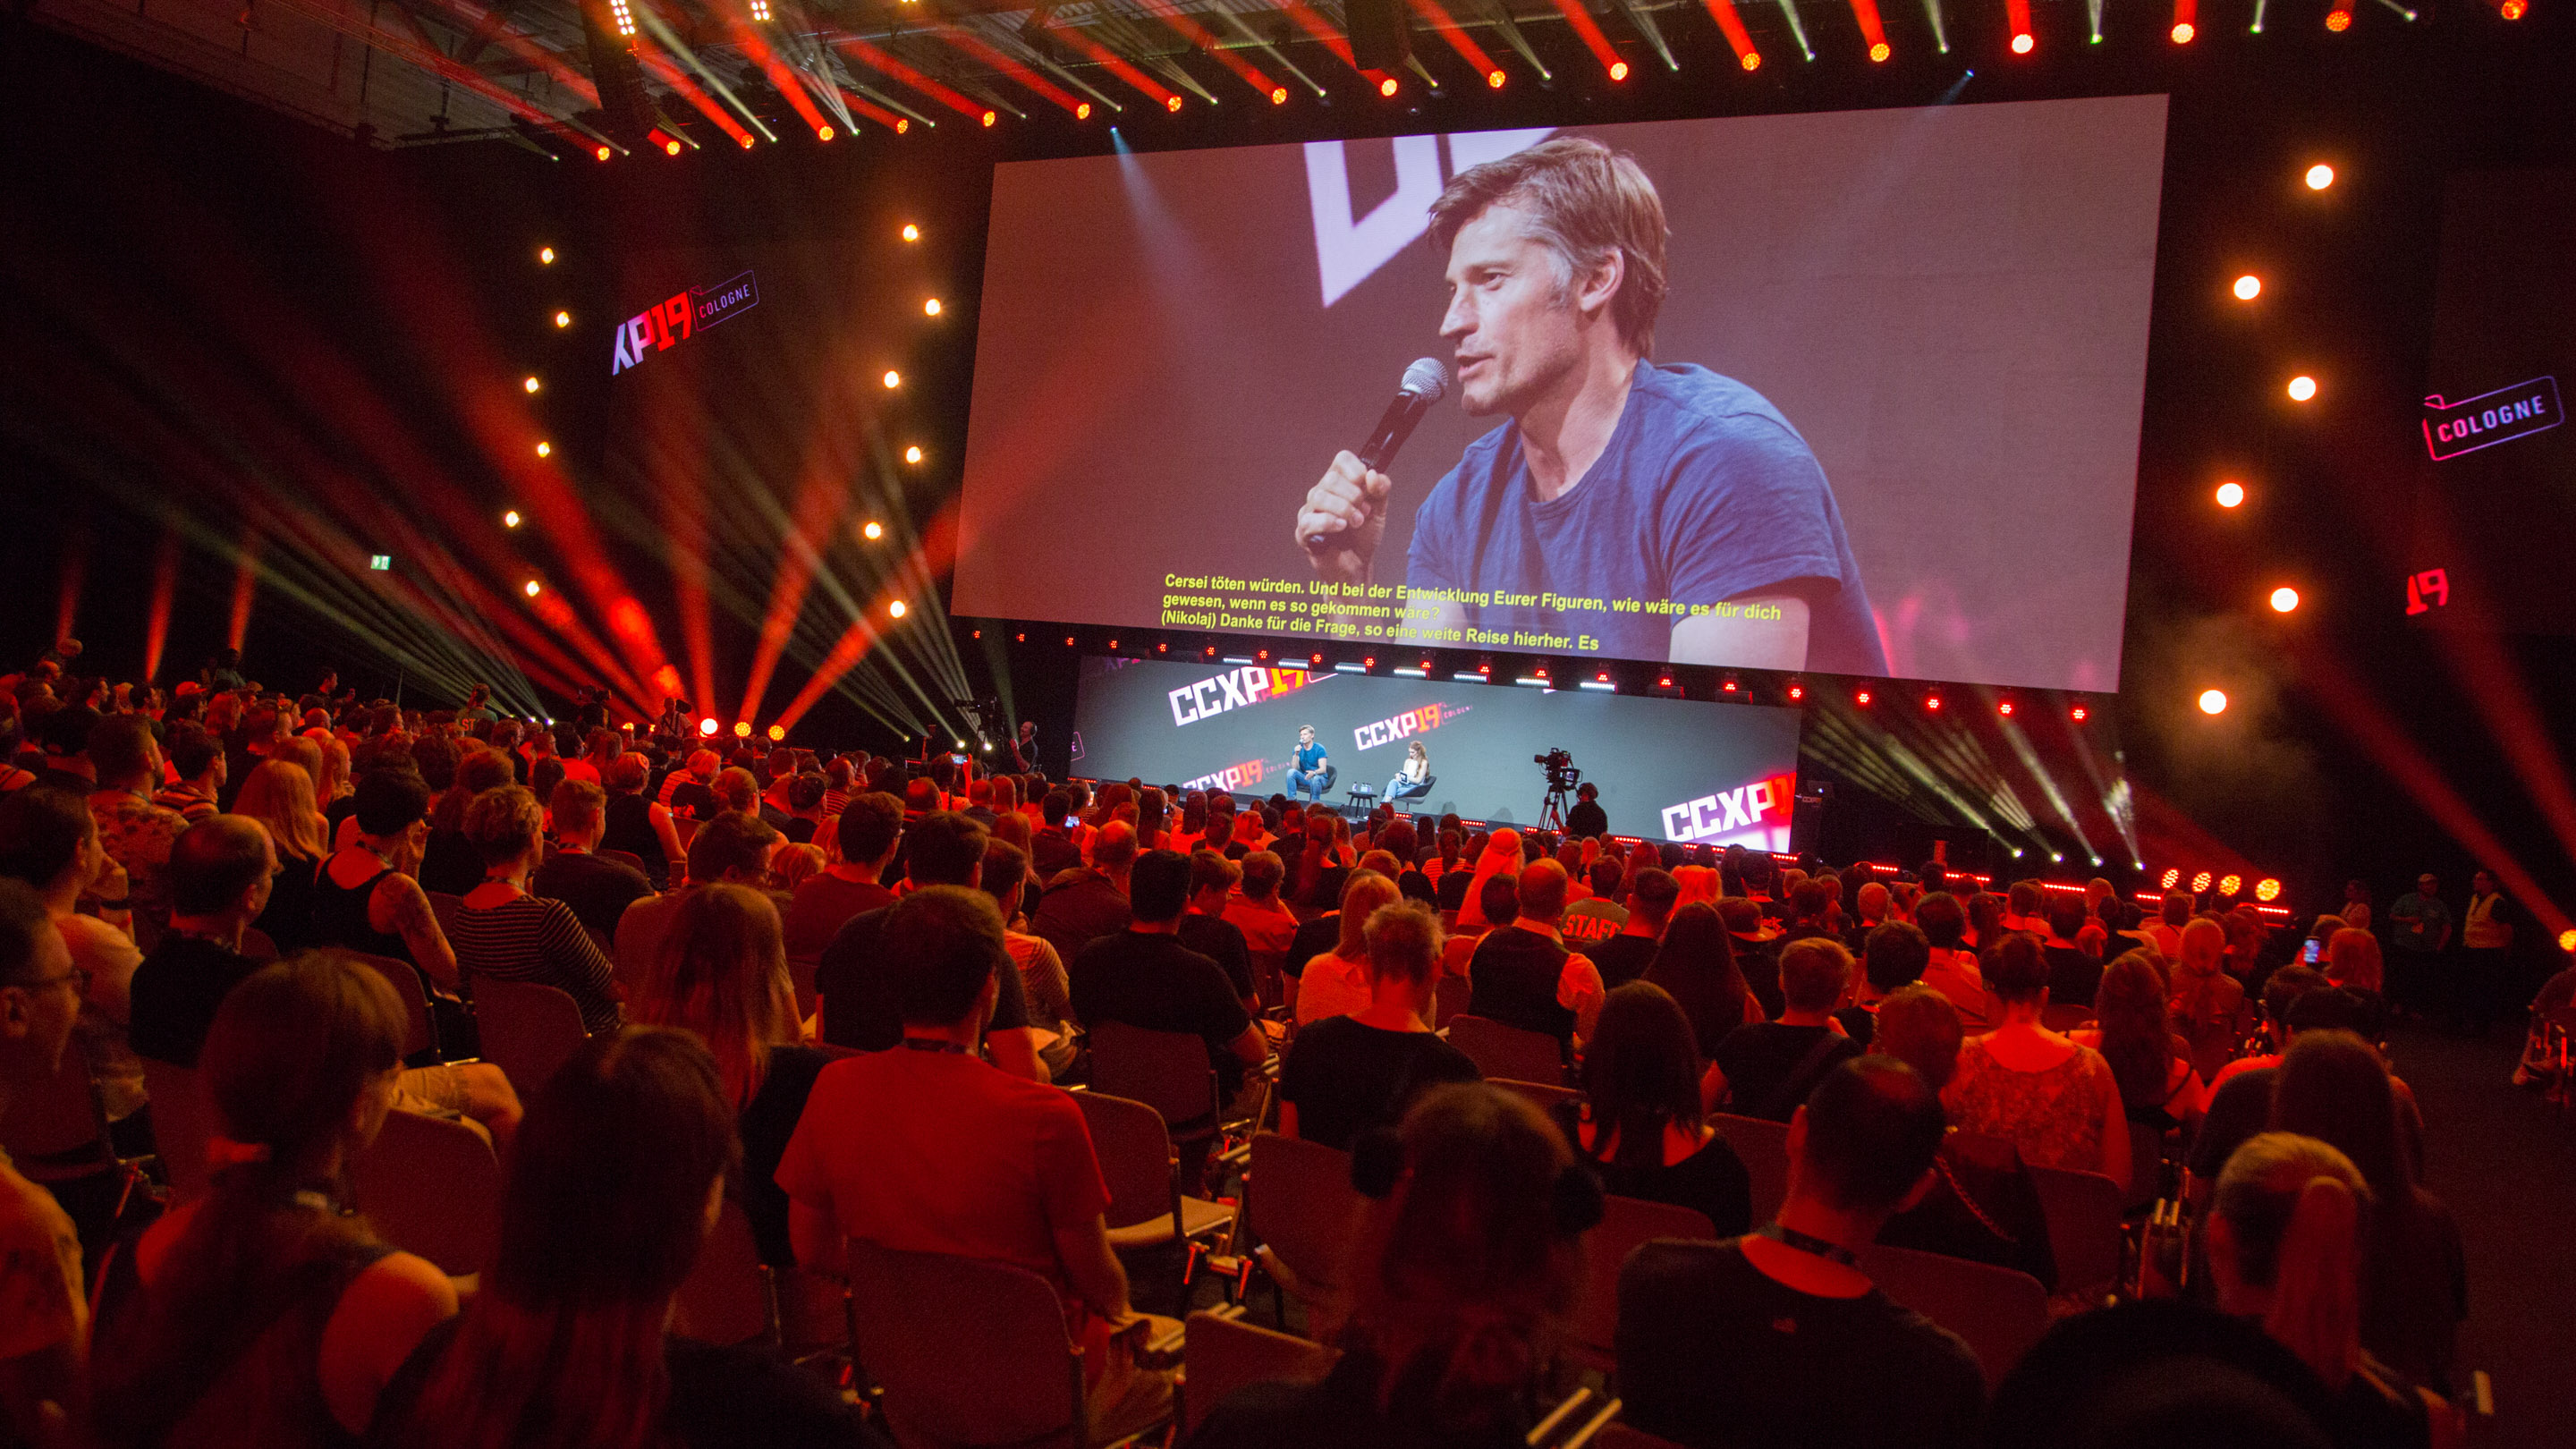 Thunder Theater: Drogon vs. Jamie - Teil 1: Erstellung der VFX für Drogon in Game of Thrones - Teil 2: Nikolaj Coster-Waldau, Hear me roar!, Halle 8, Comic Con Experience 2019